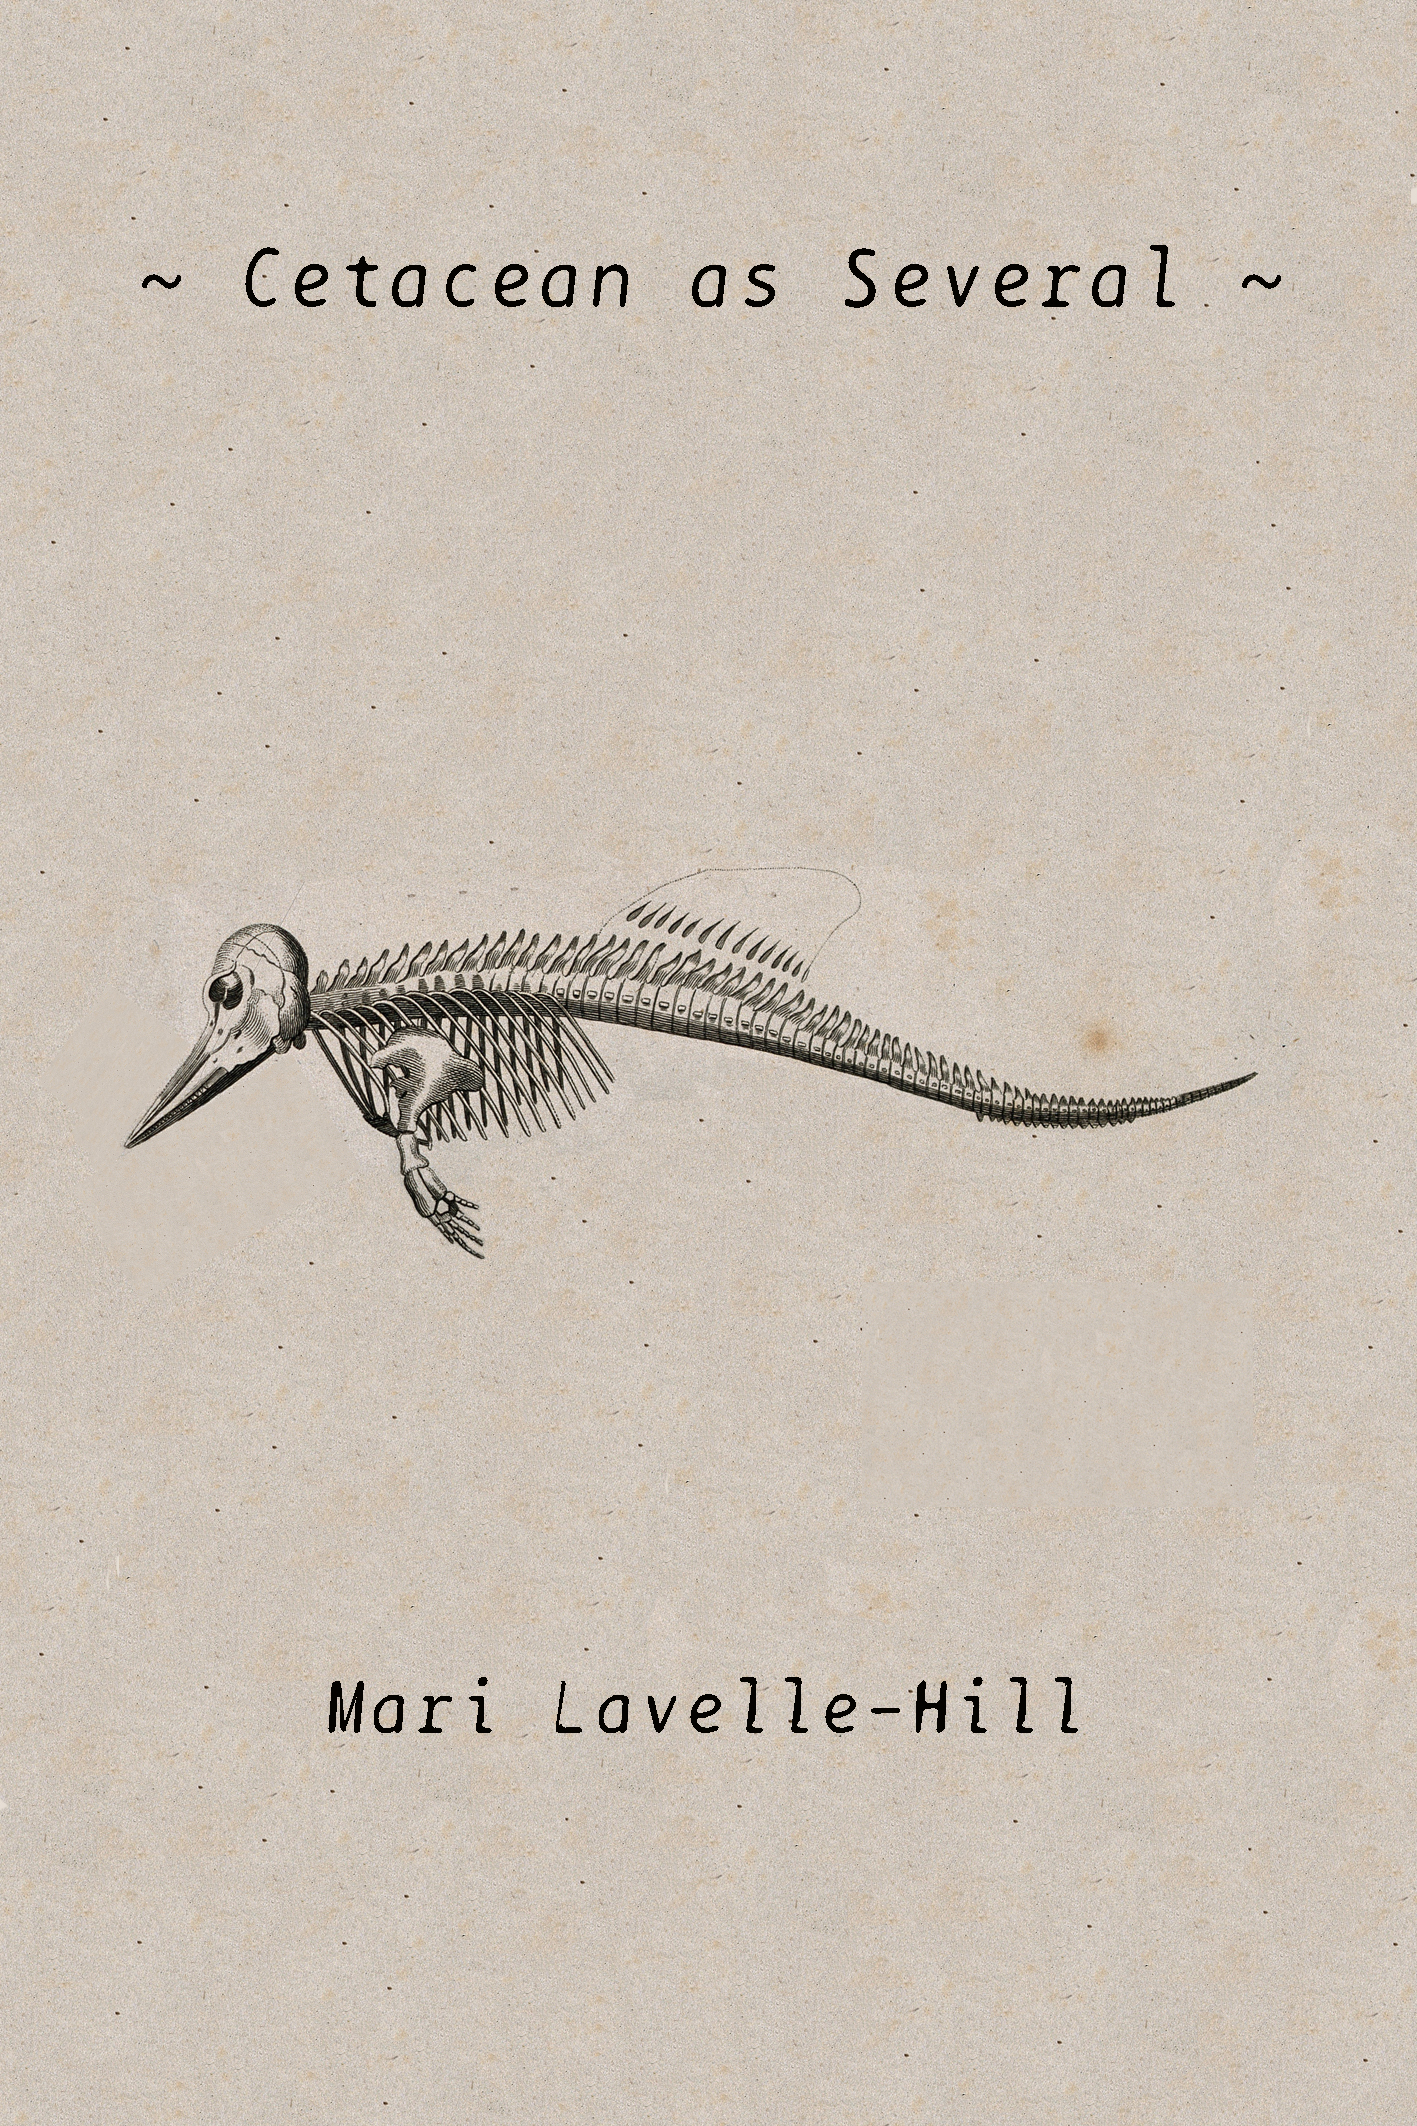 Cetacean as Several - Mari Lavelle-Hill